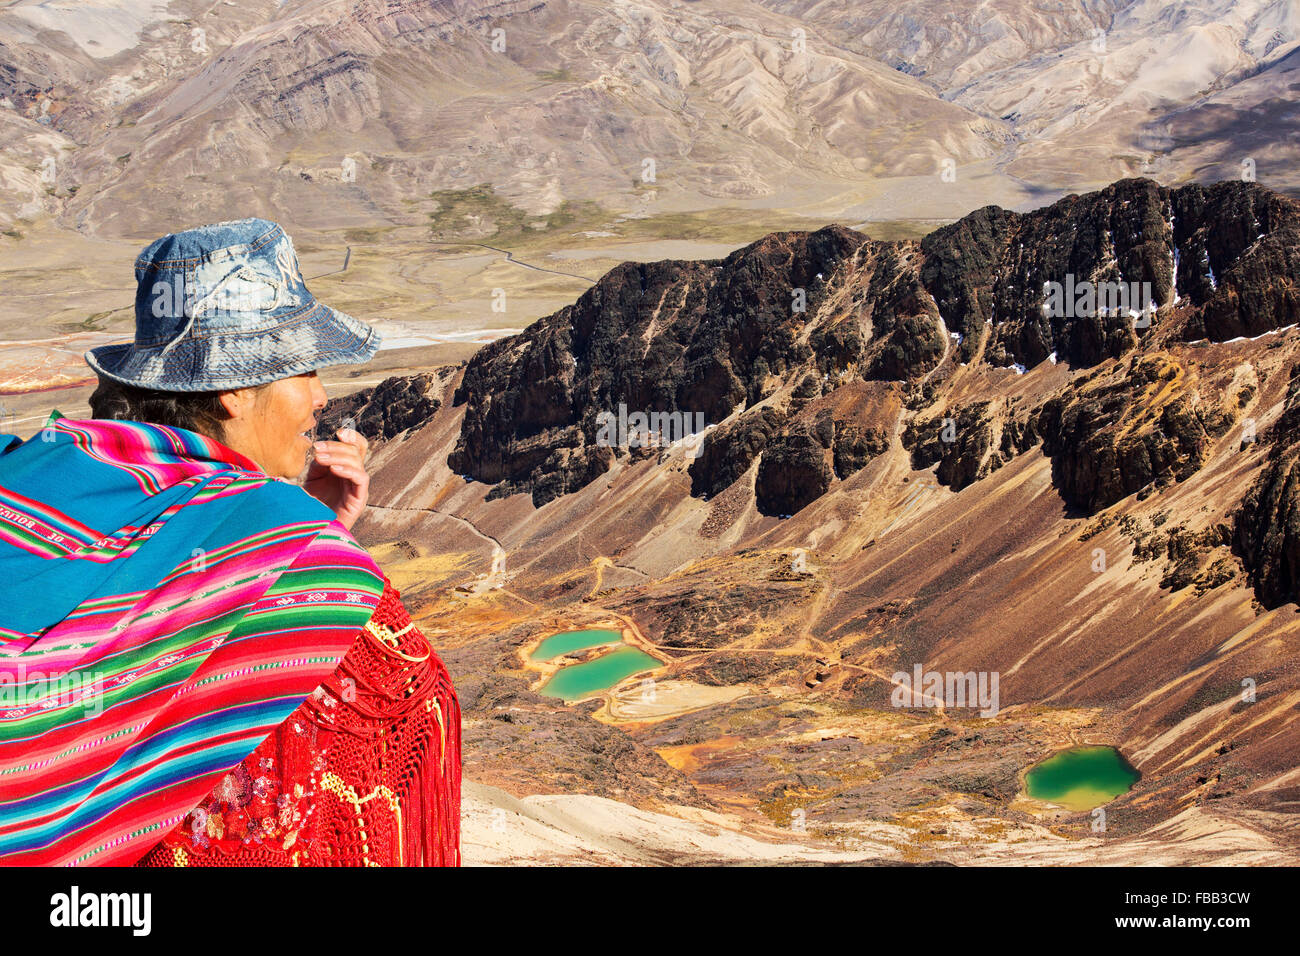 Colourful lakes below the peak of Chacaltaya in the Bolivian Andes. - Stock Image